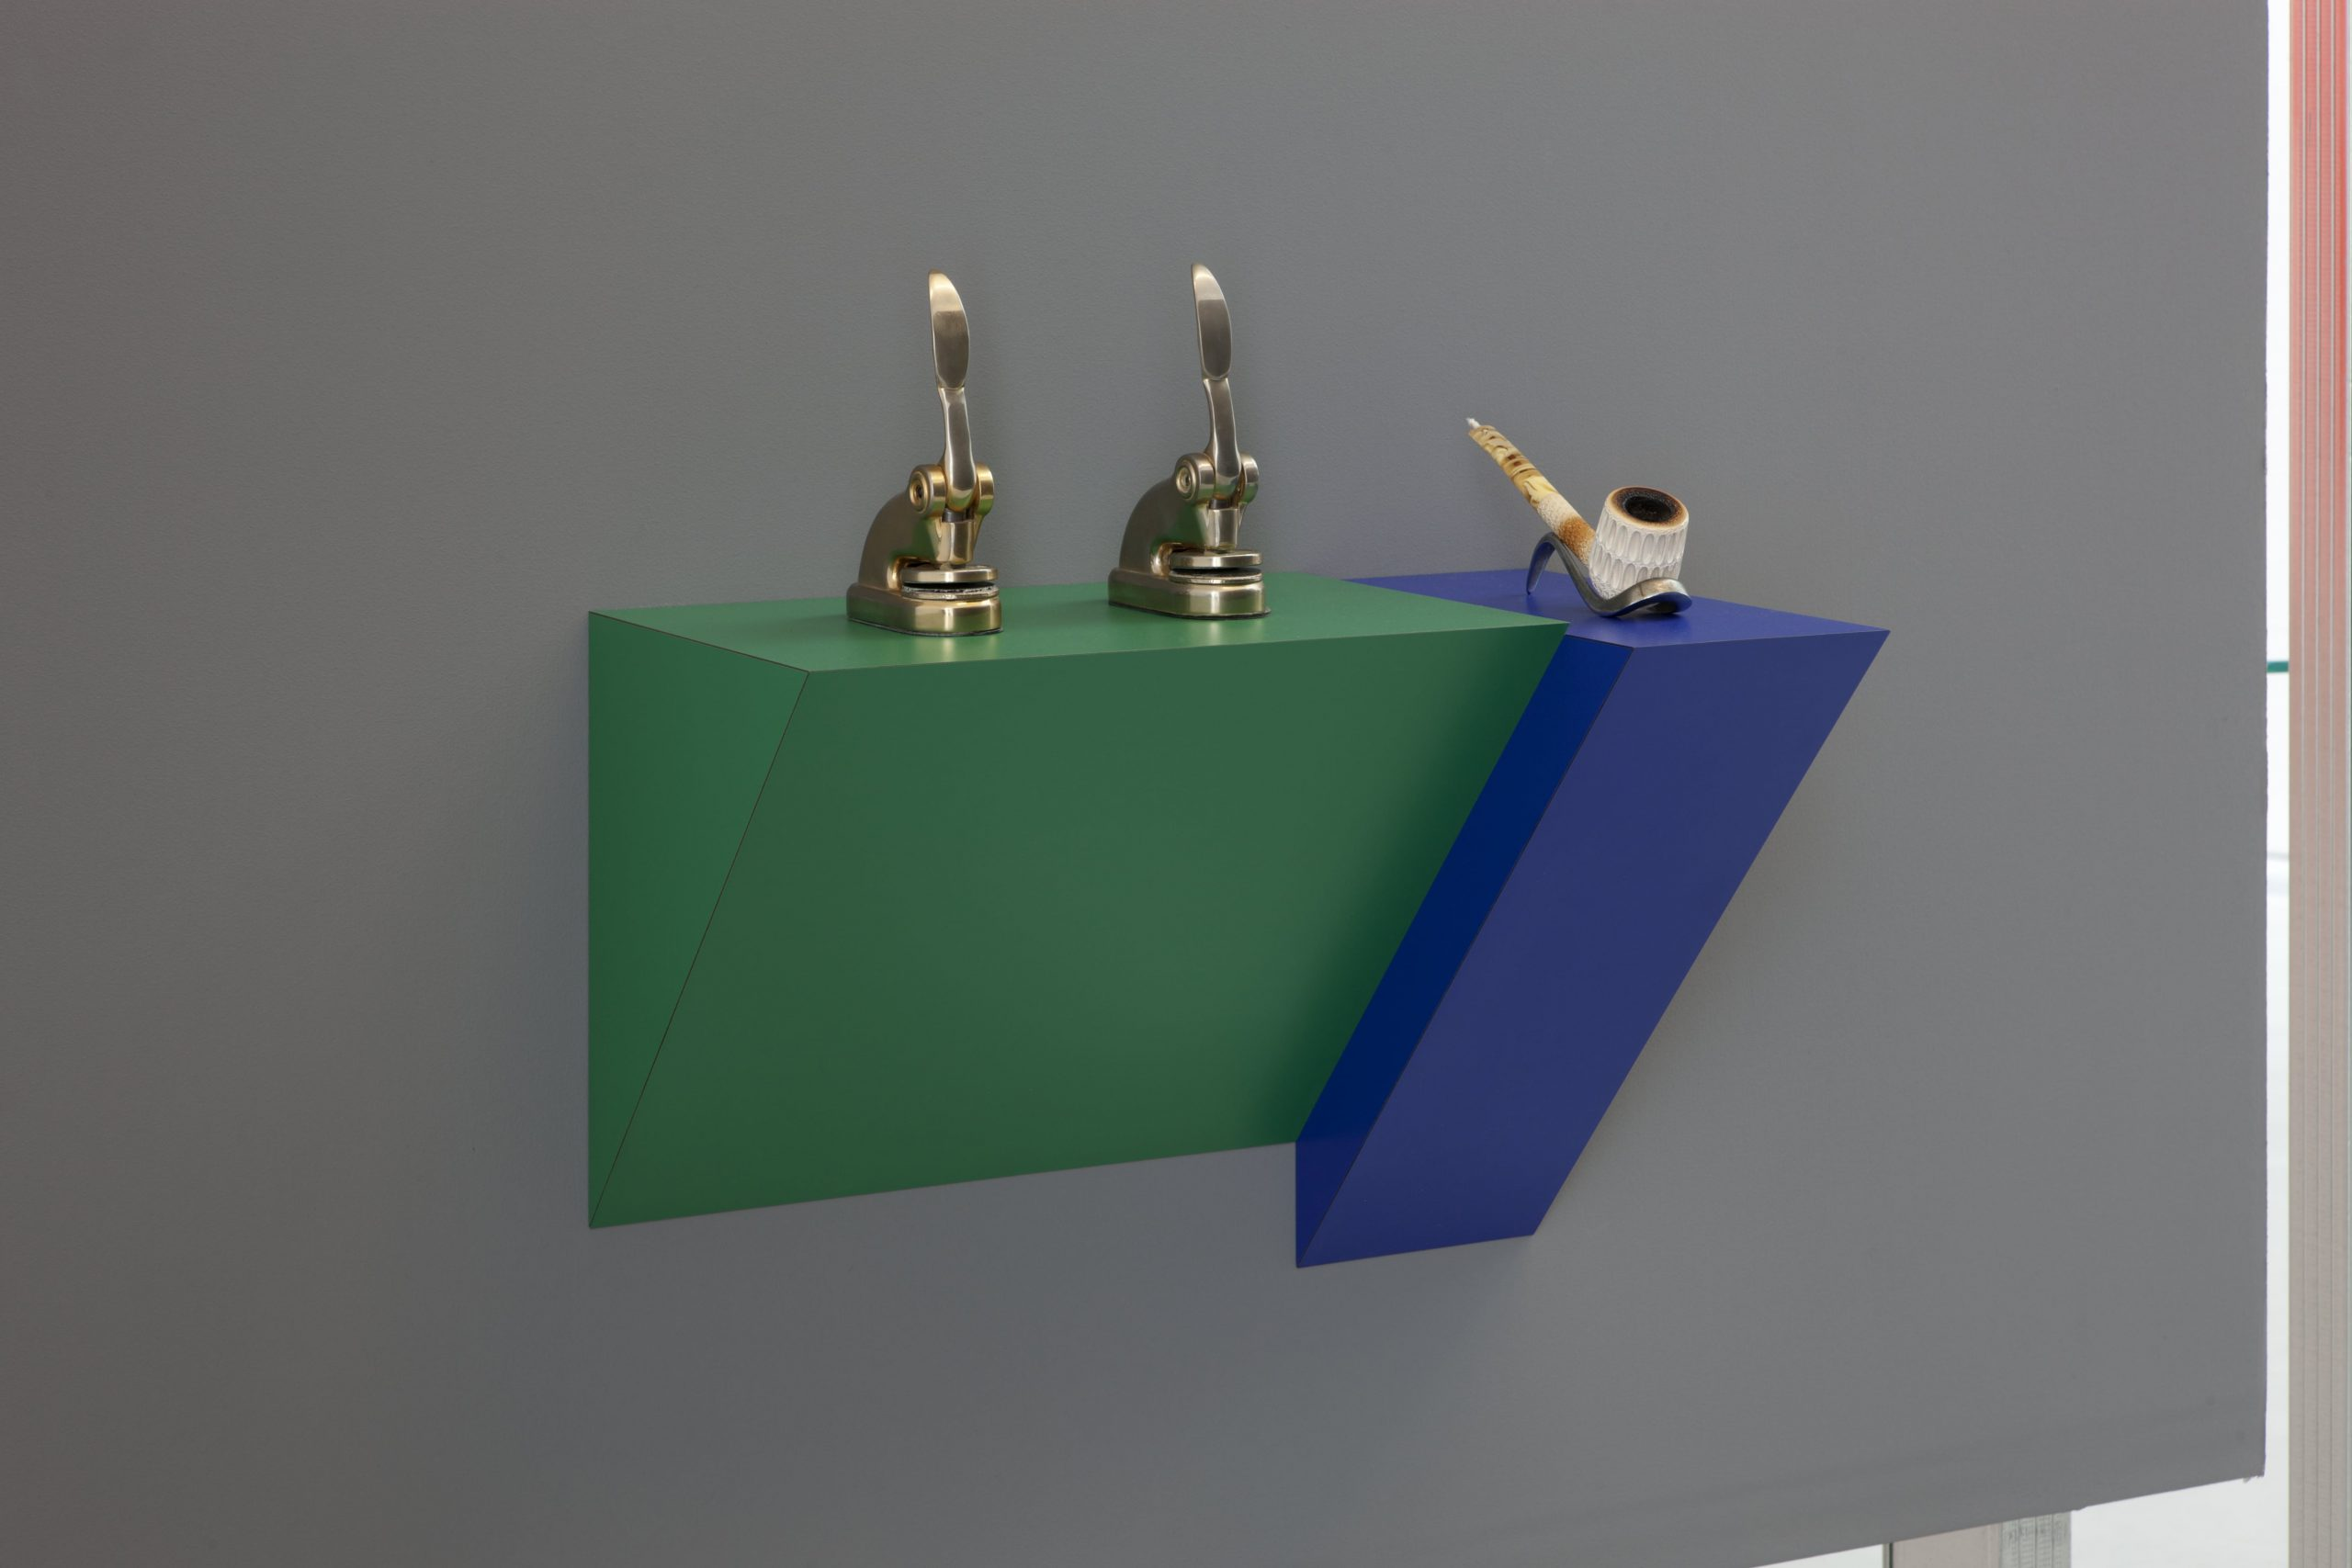 Haim Steinbach, Untitled (punches, pipe), 2012 Plastic laminated wood shelf 2 metal punches meerschaum pipe, 52,5x51,5x29,7 cm